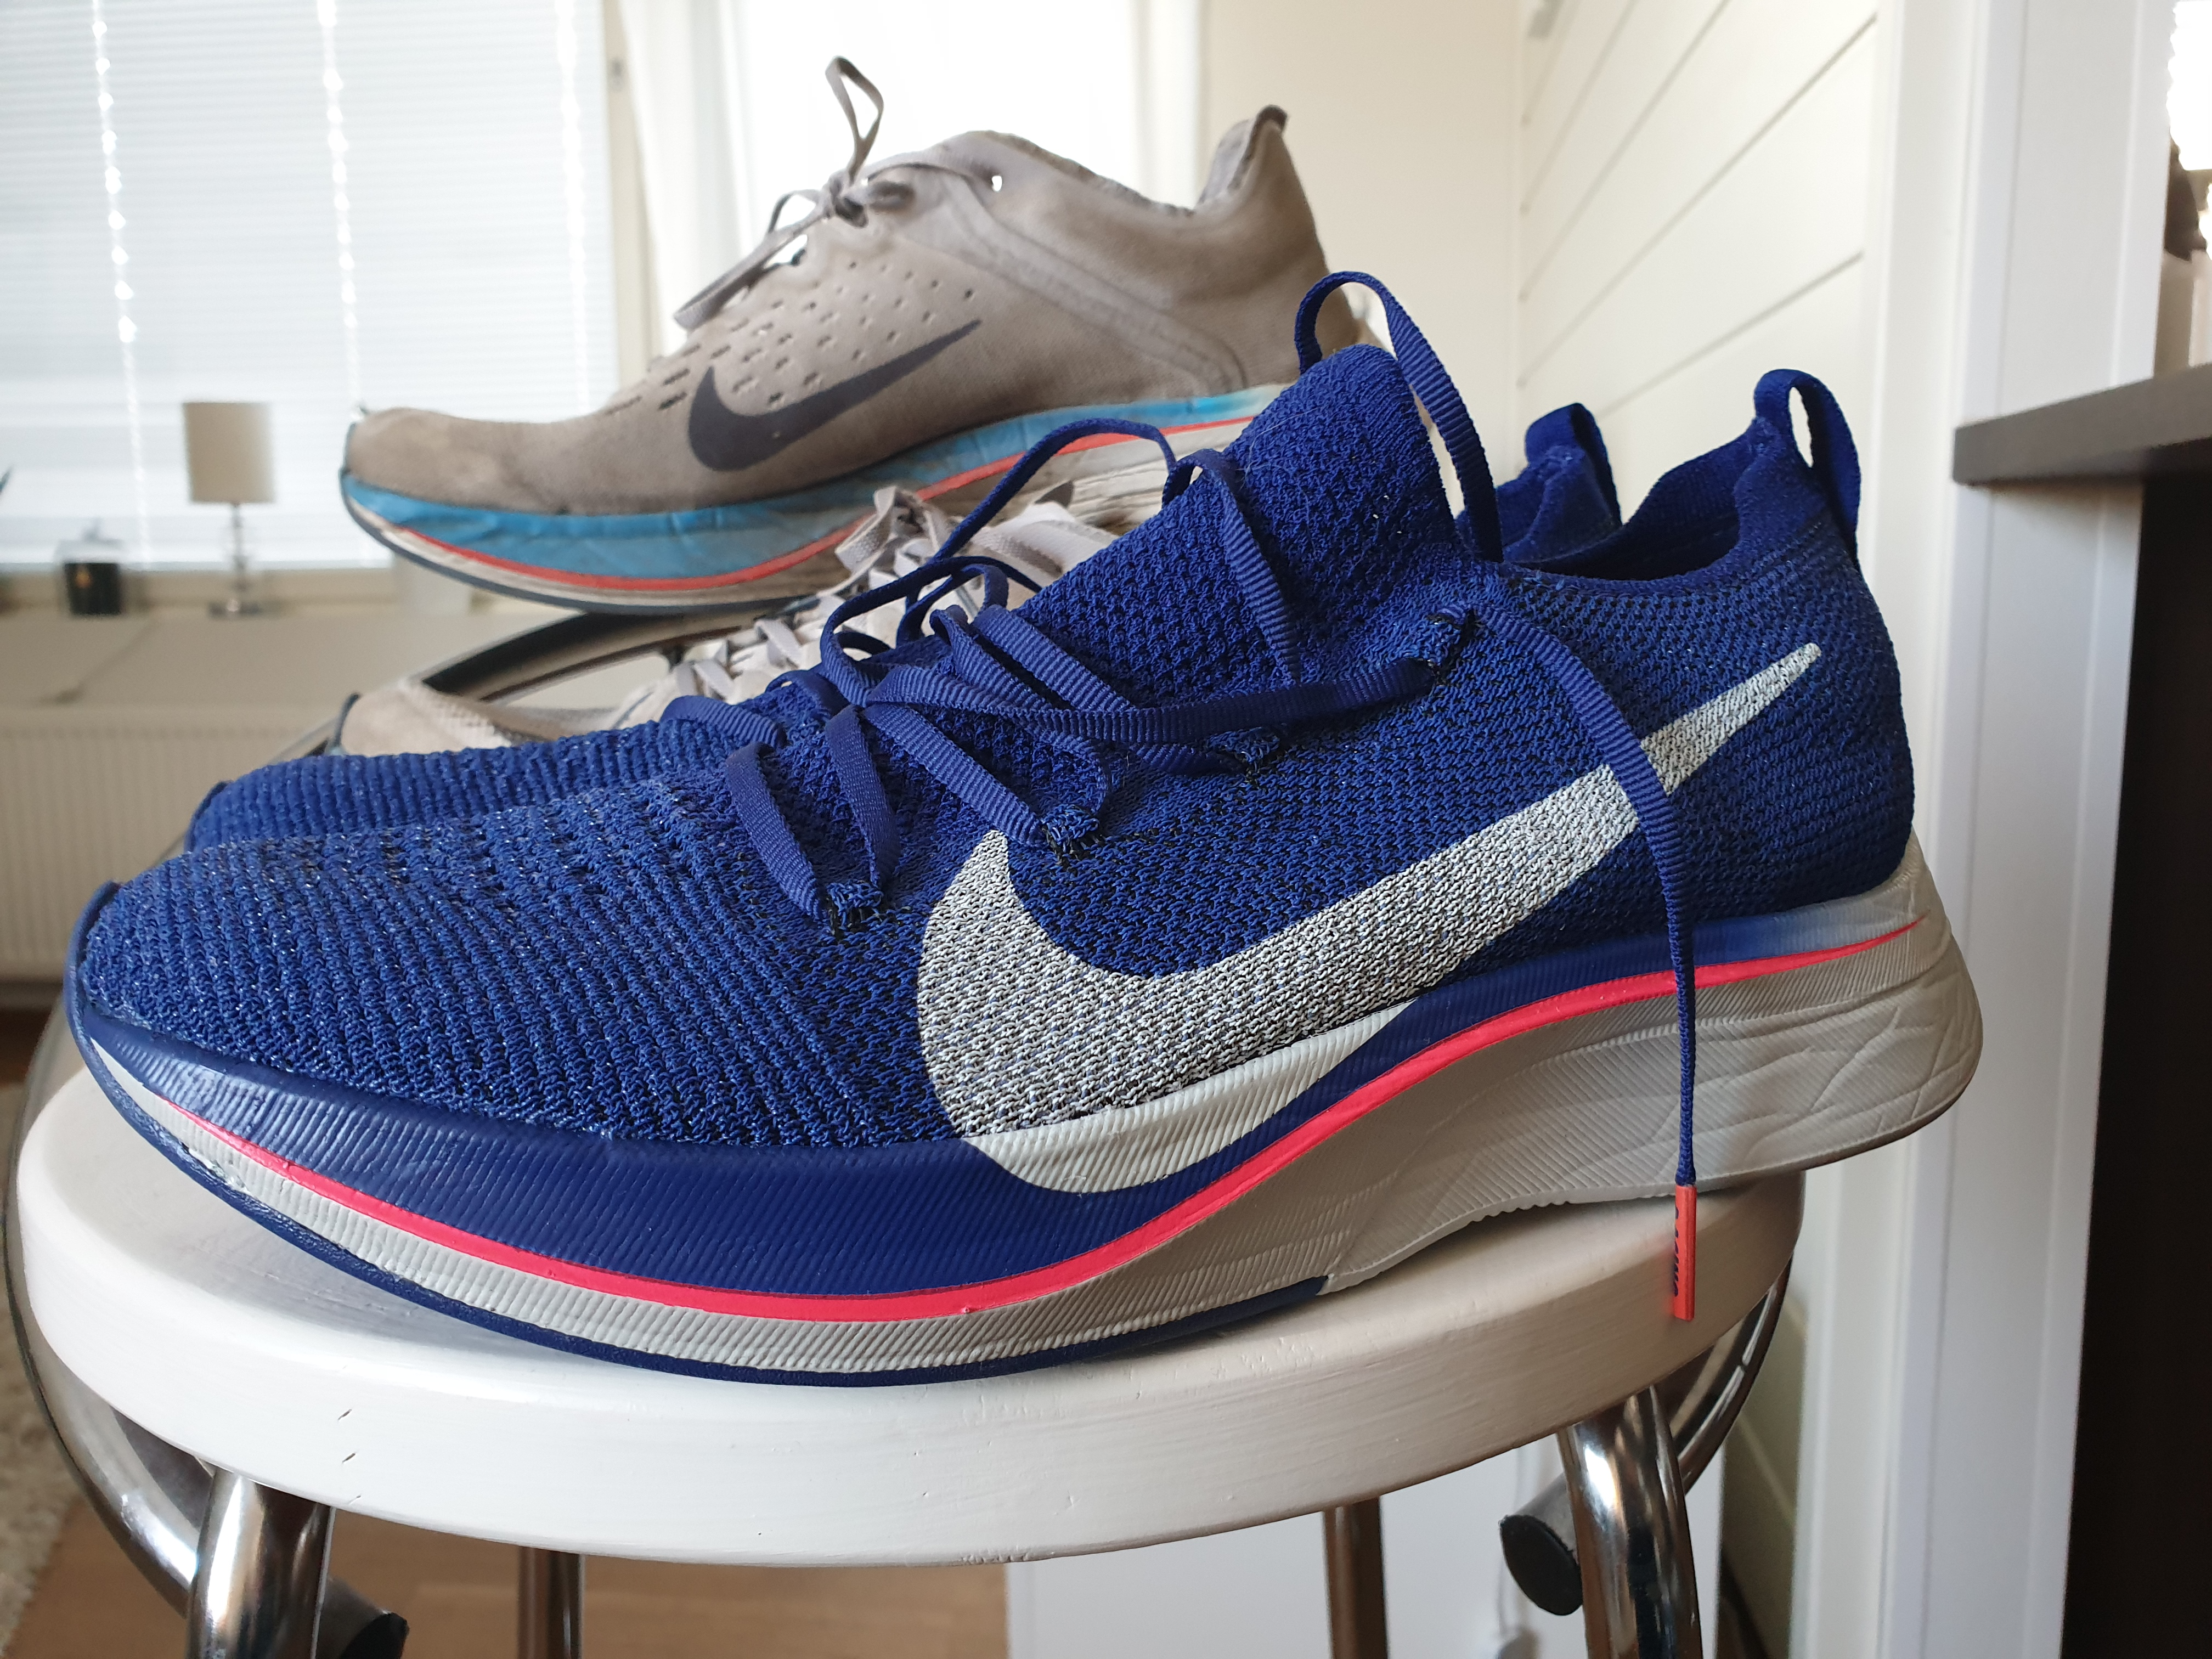 nike vaporfly 4% review recension